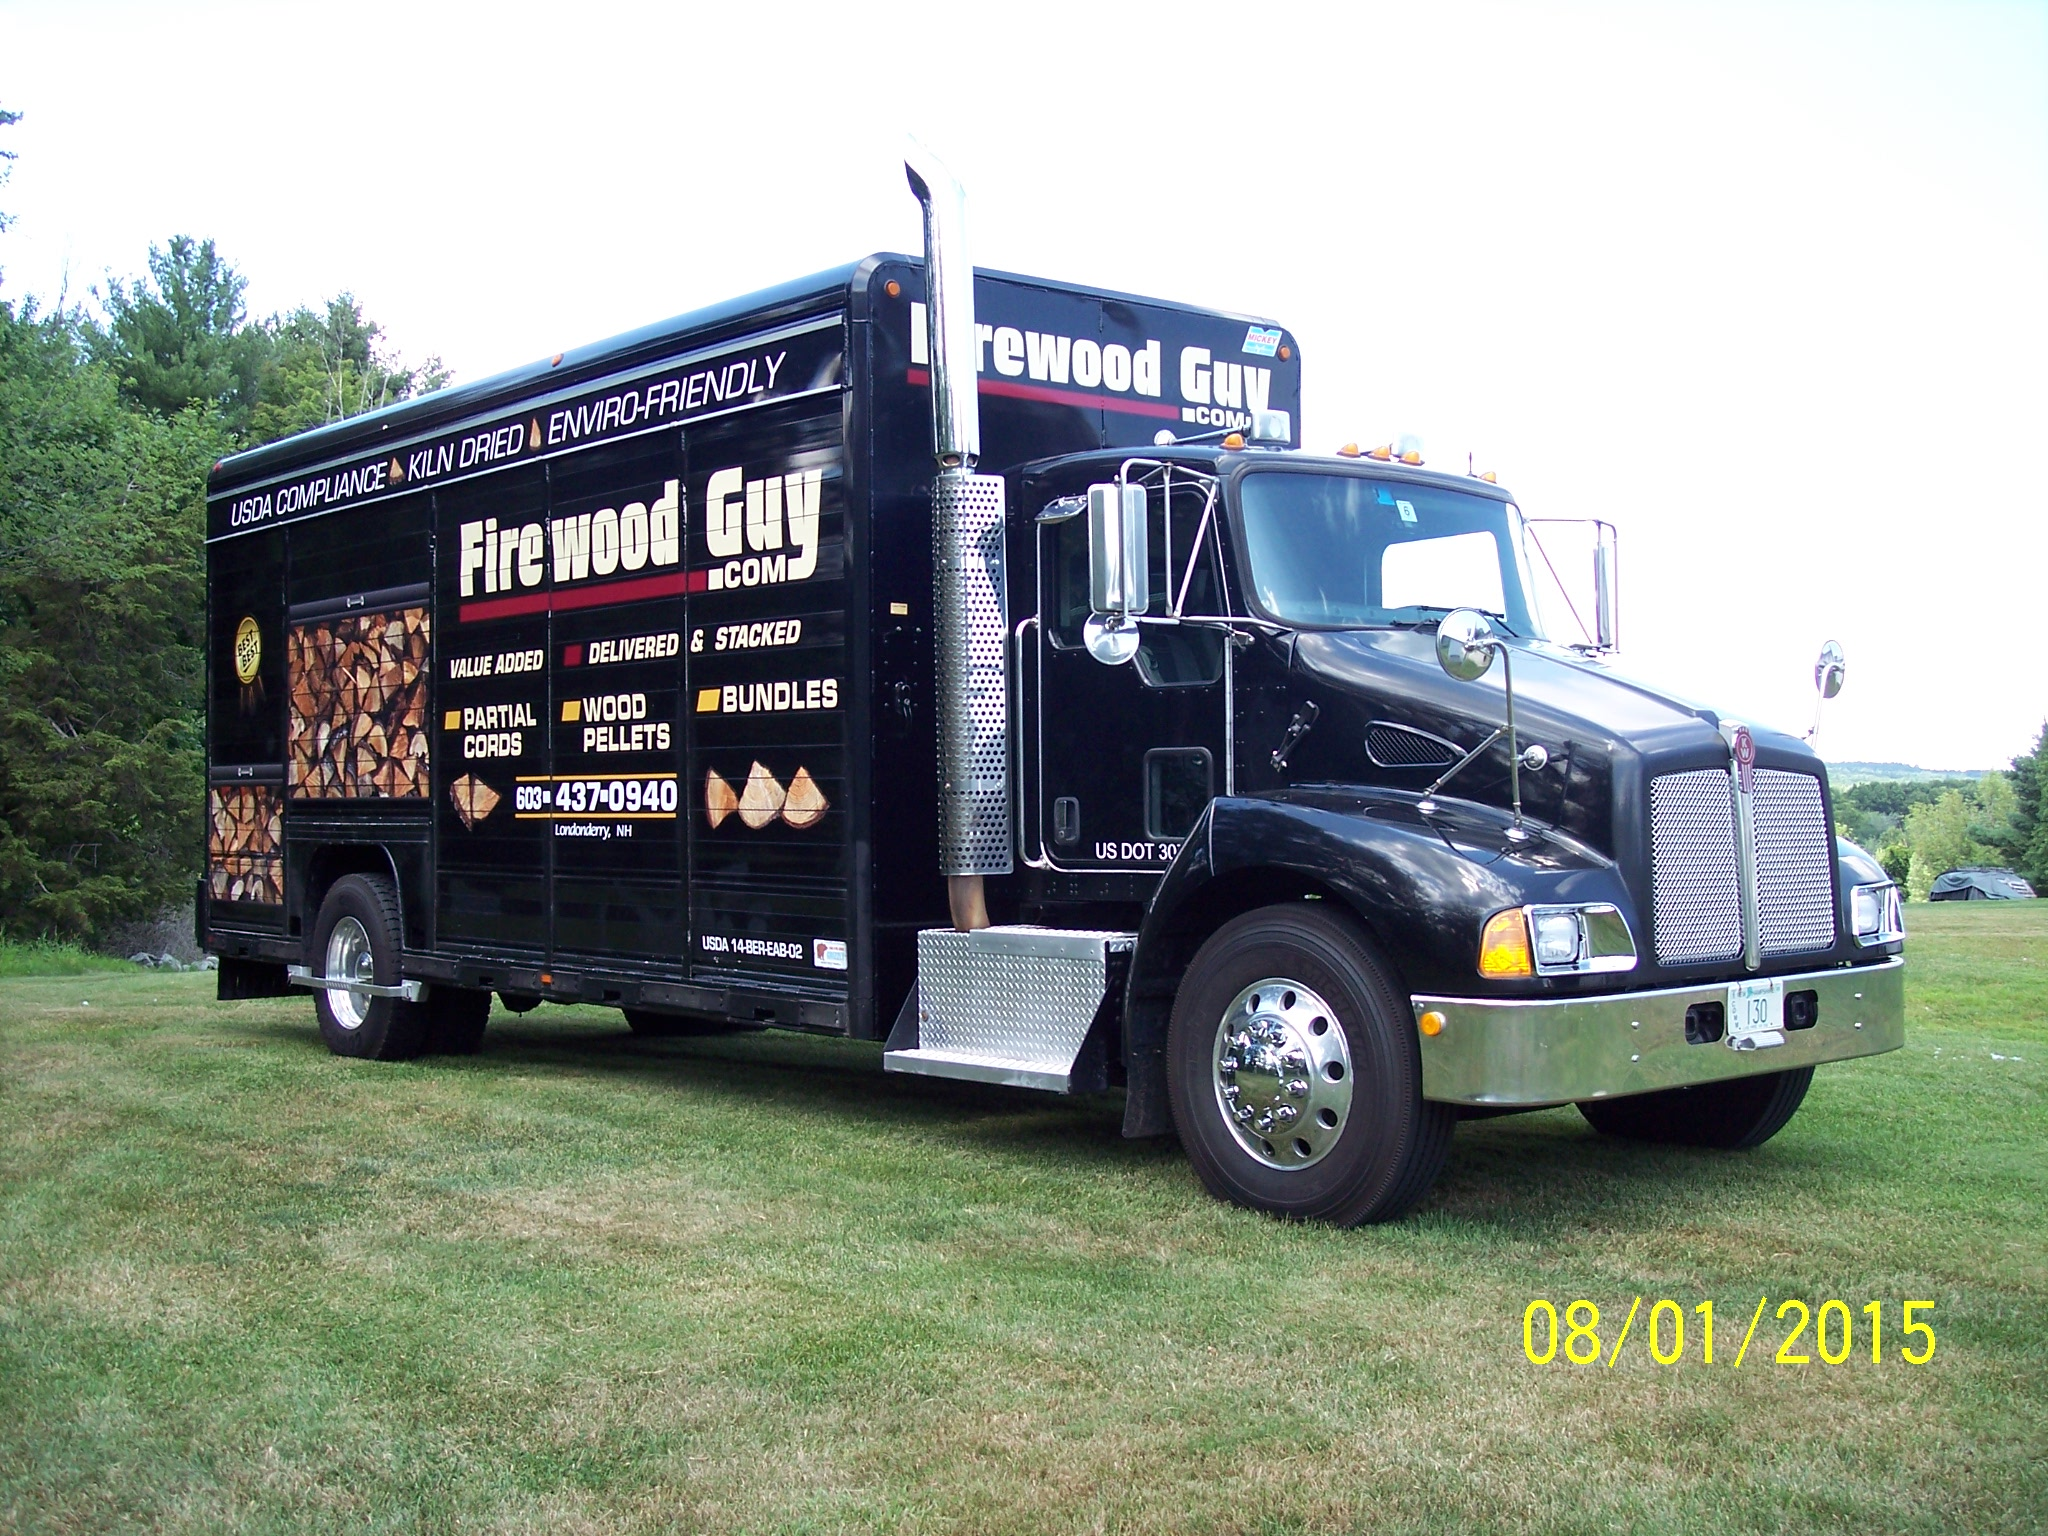 yankee truck 24 hall st concord nh 03301. Black Bedroom Furniture Sets. Home Design Ideas